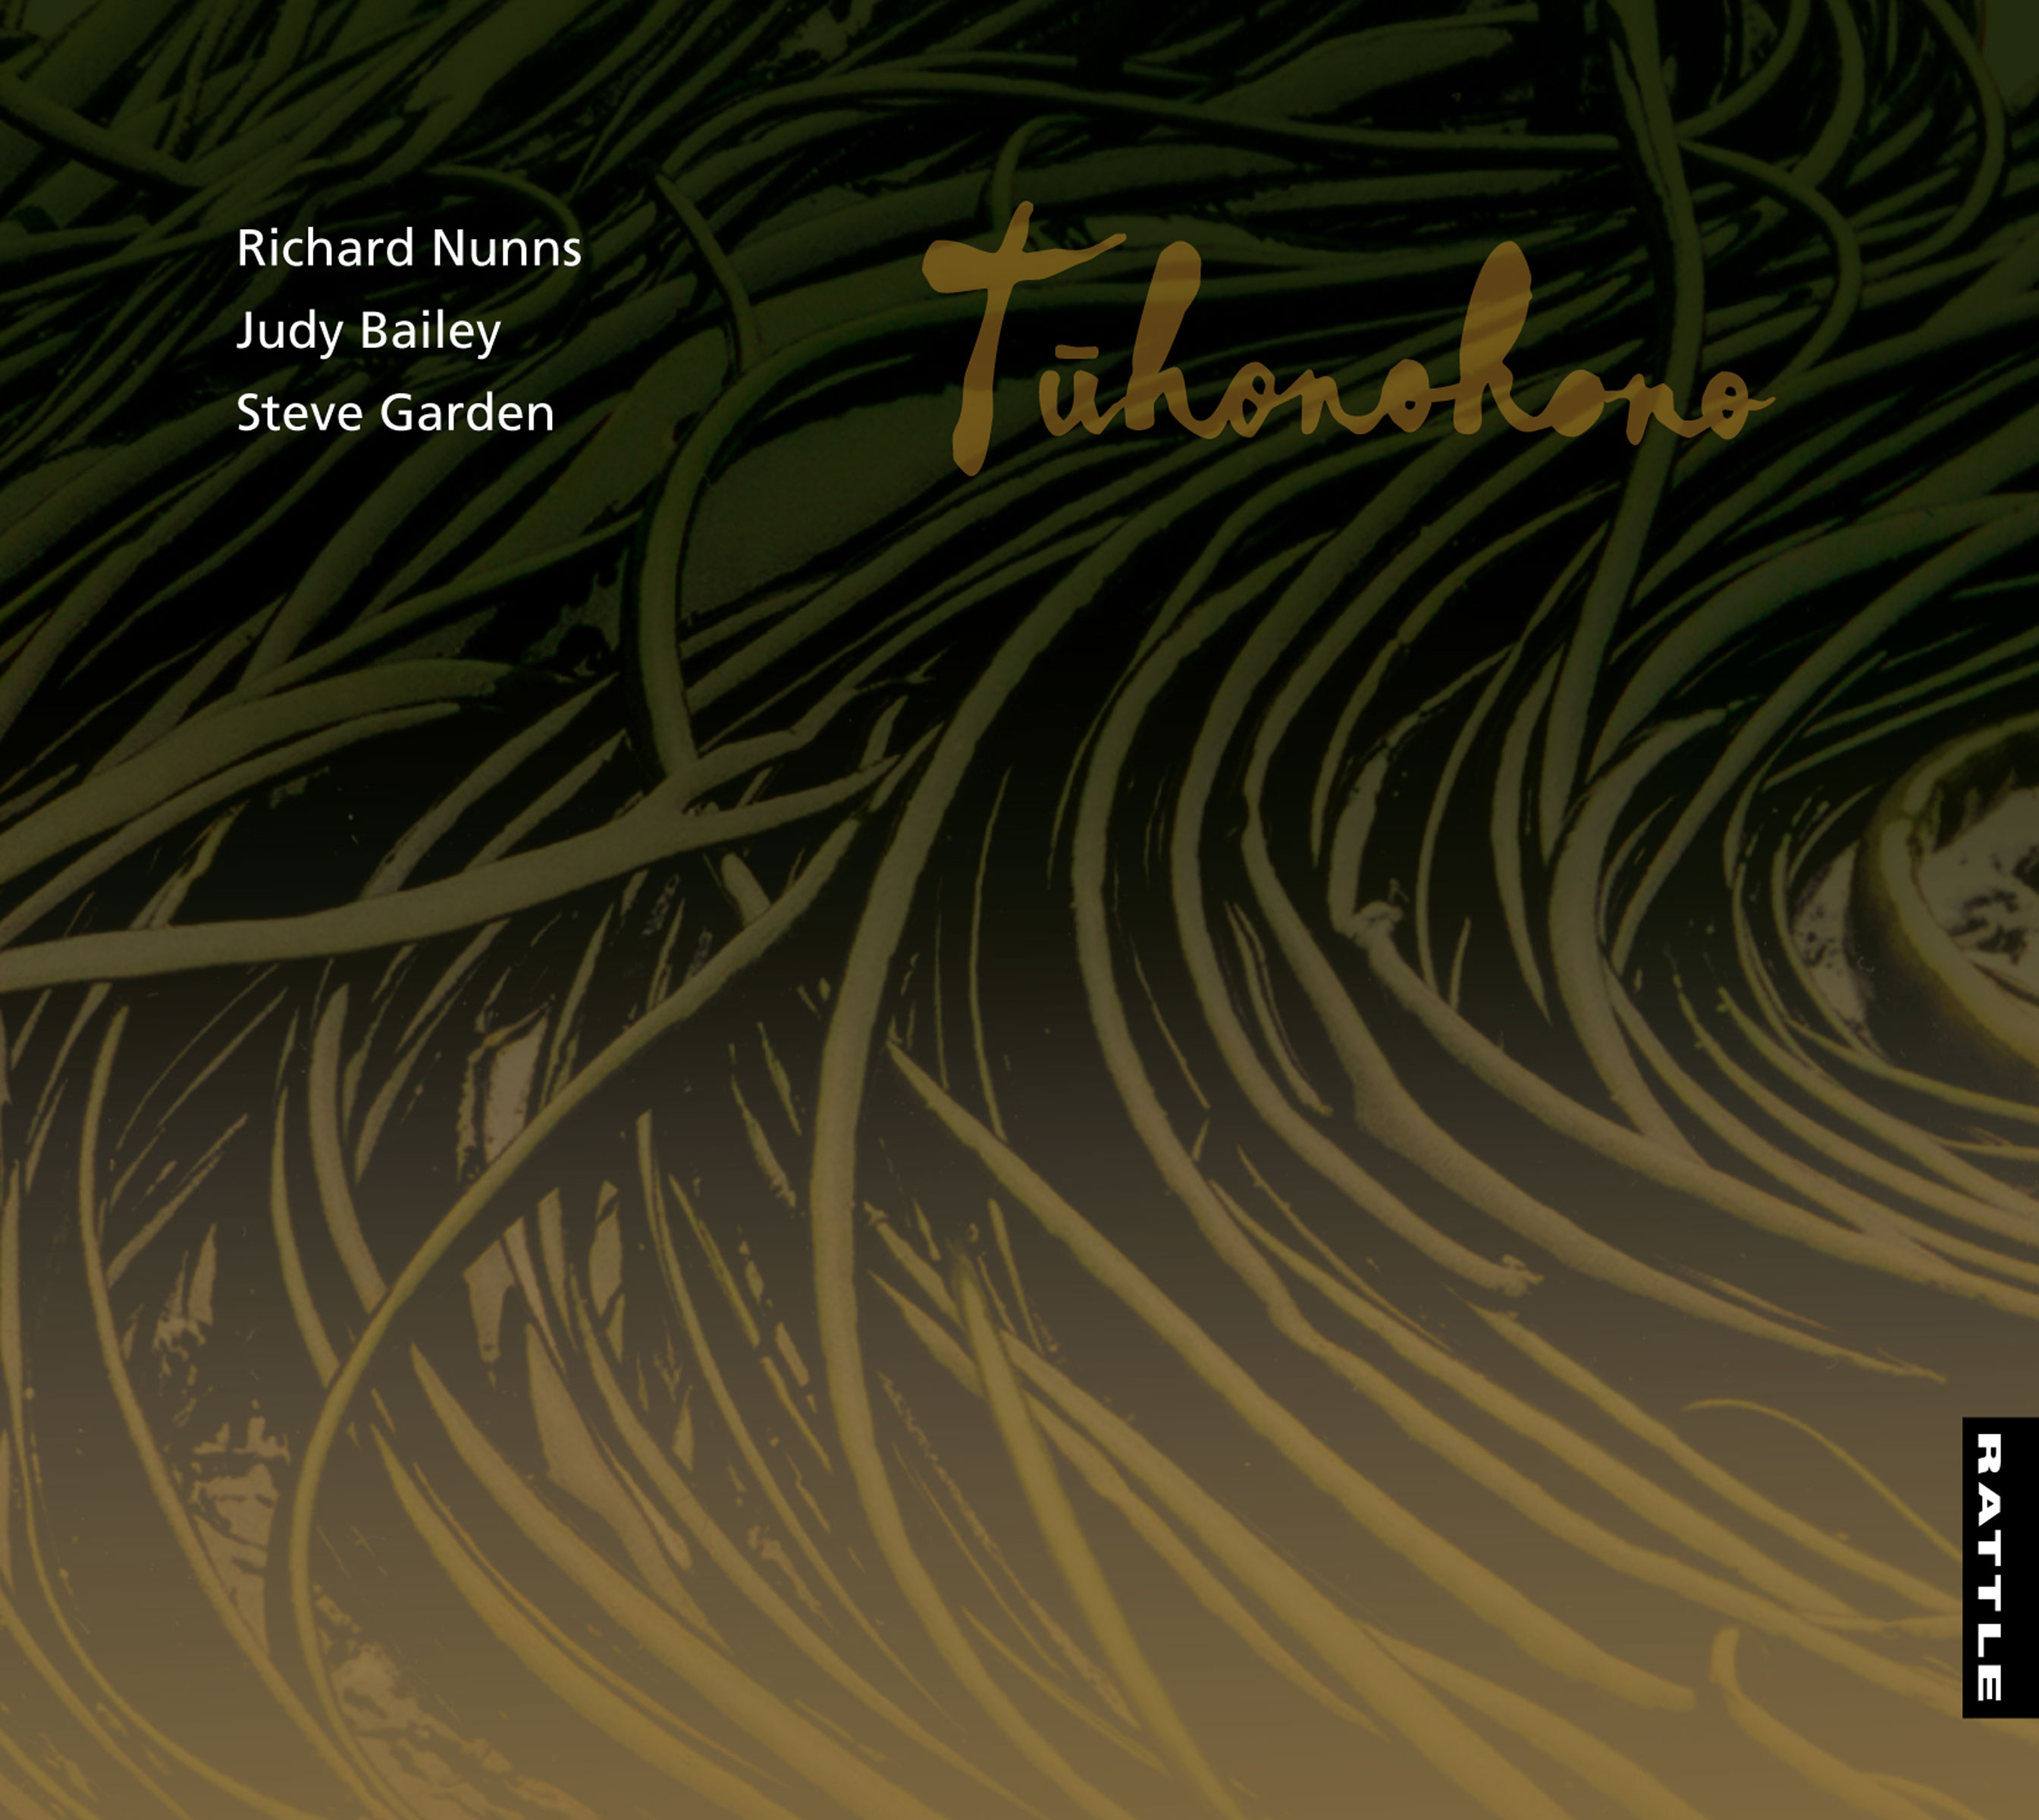 Judy Bailey and Richard Nunns | Tuhonohono - downloadable MP3 ALBUM